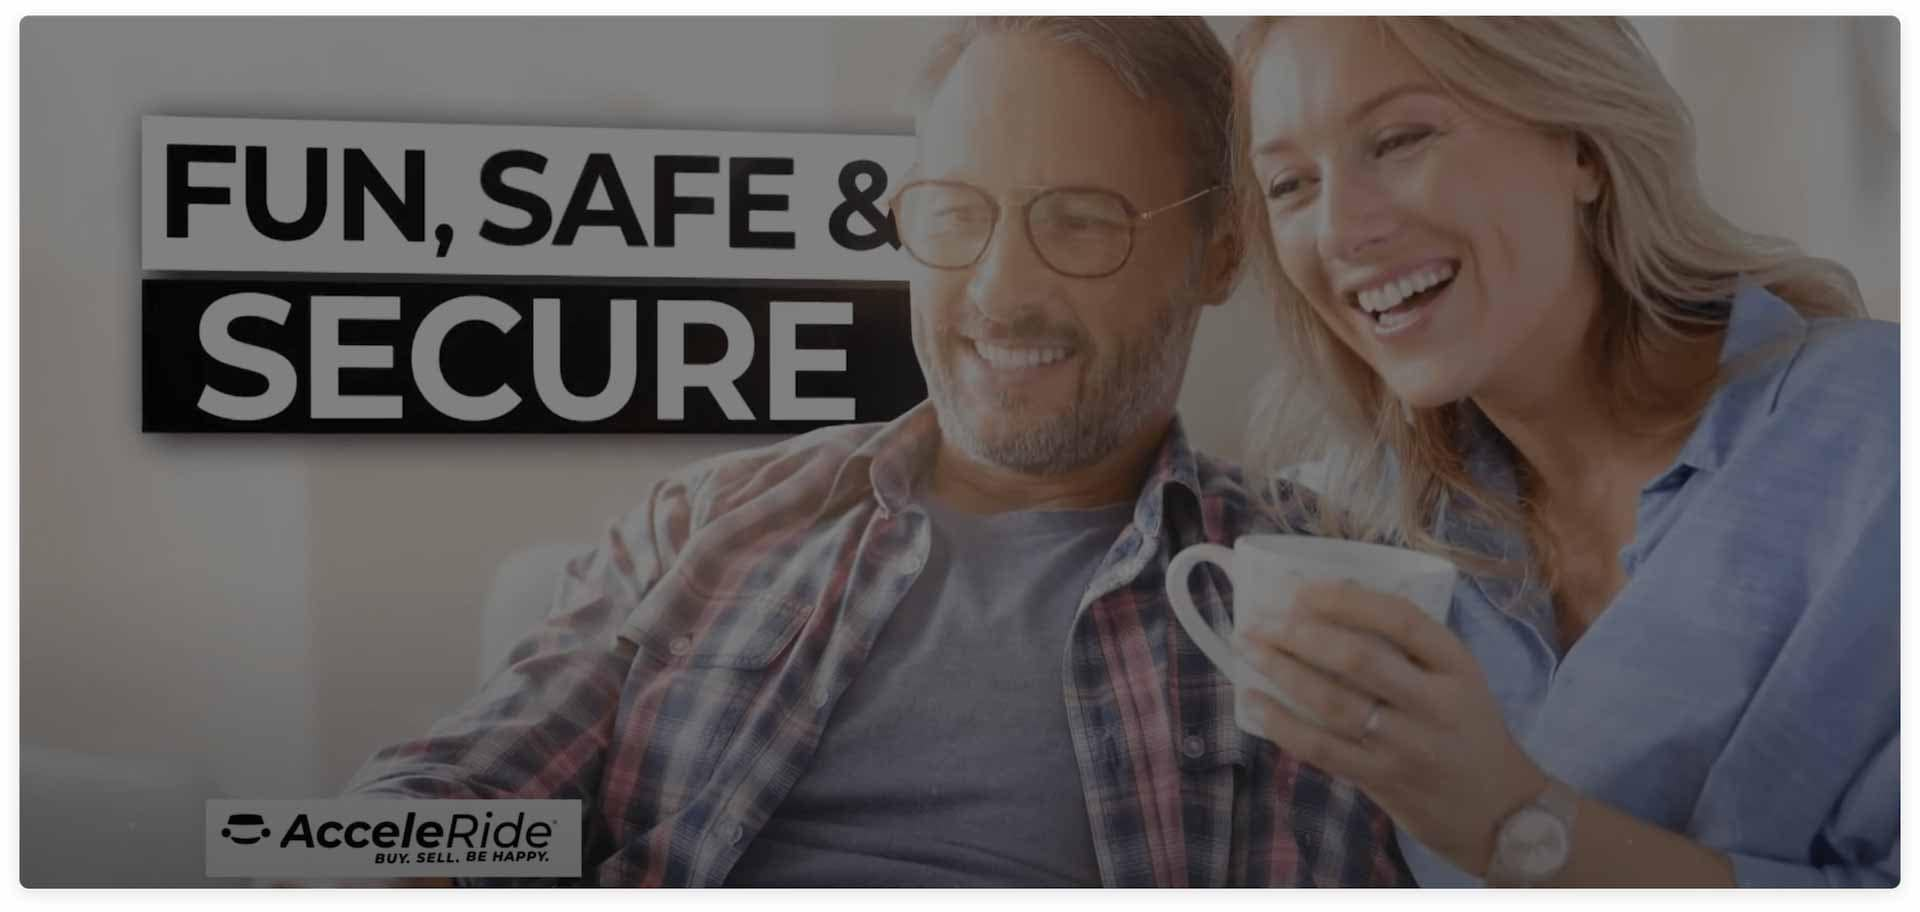 Couple Laughing Acceleride Banner